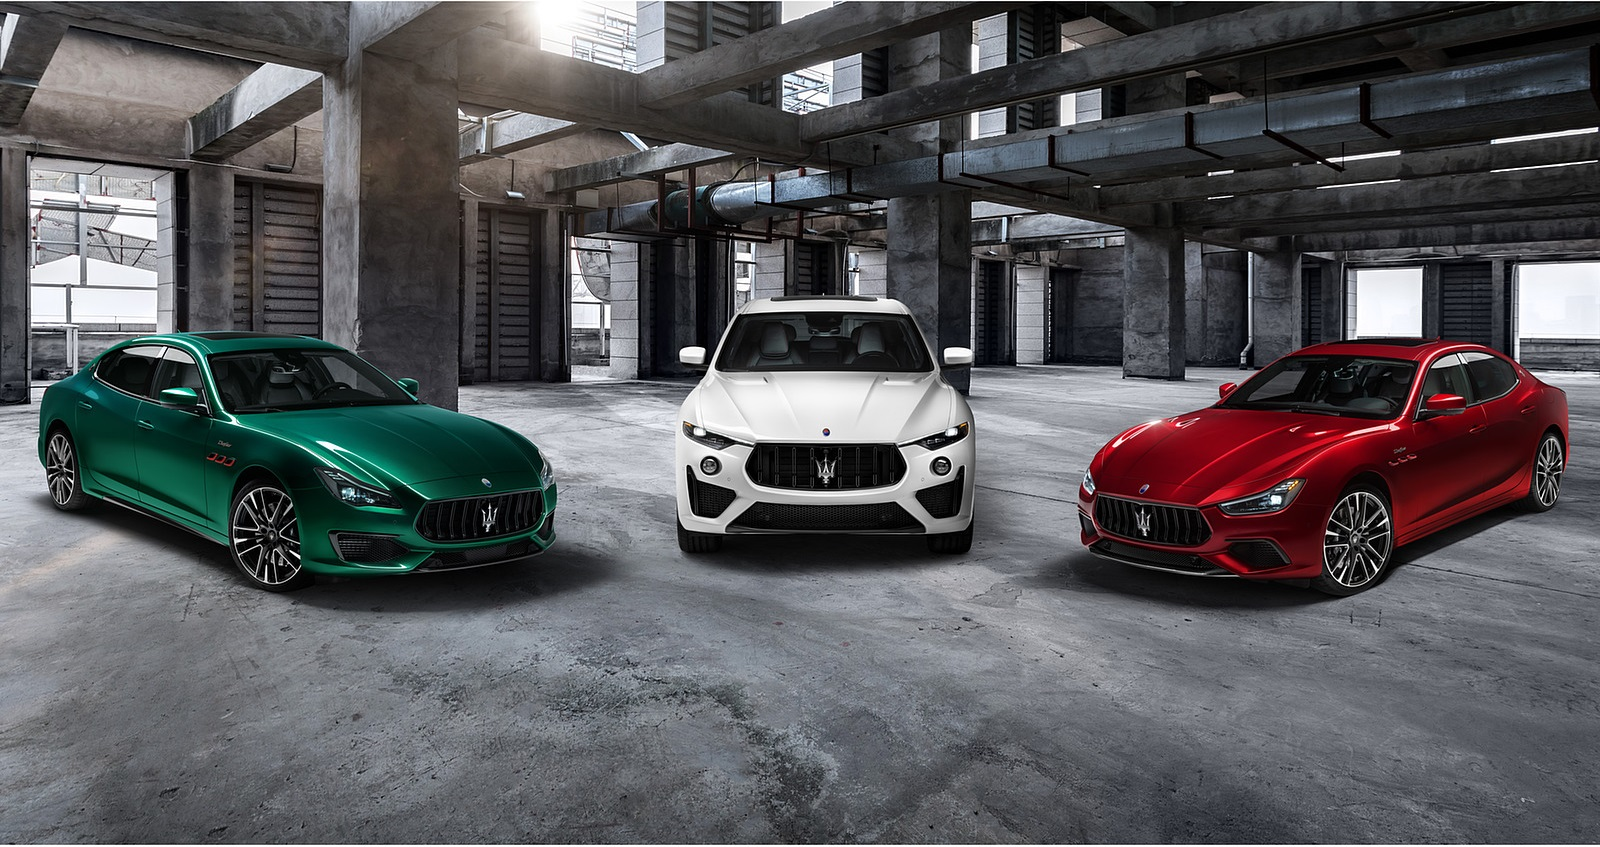 2021 Maserati Levante Trofeo Wallpapers (5)